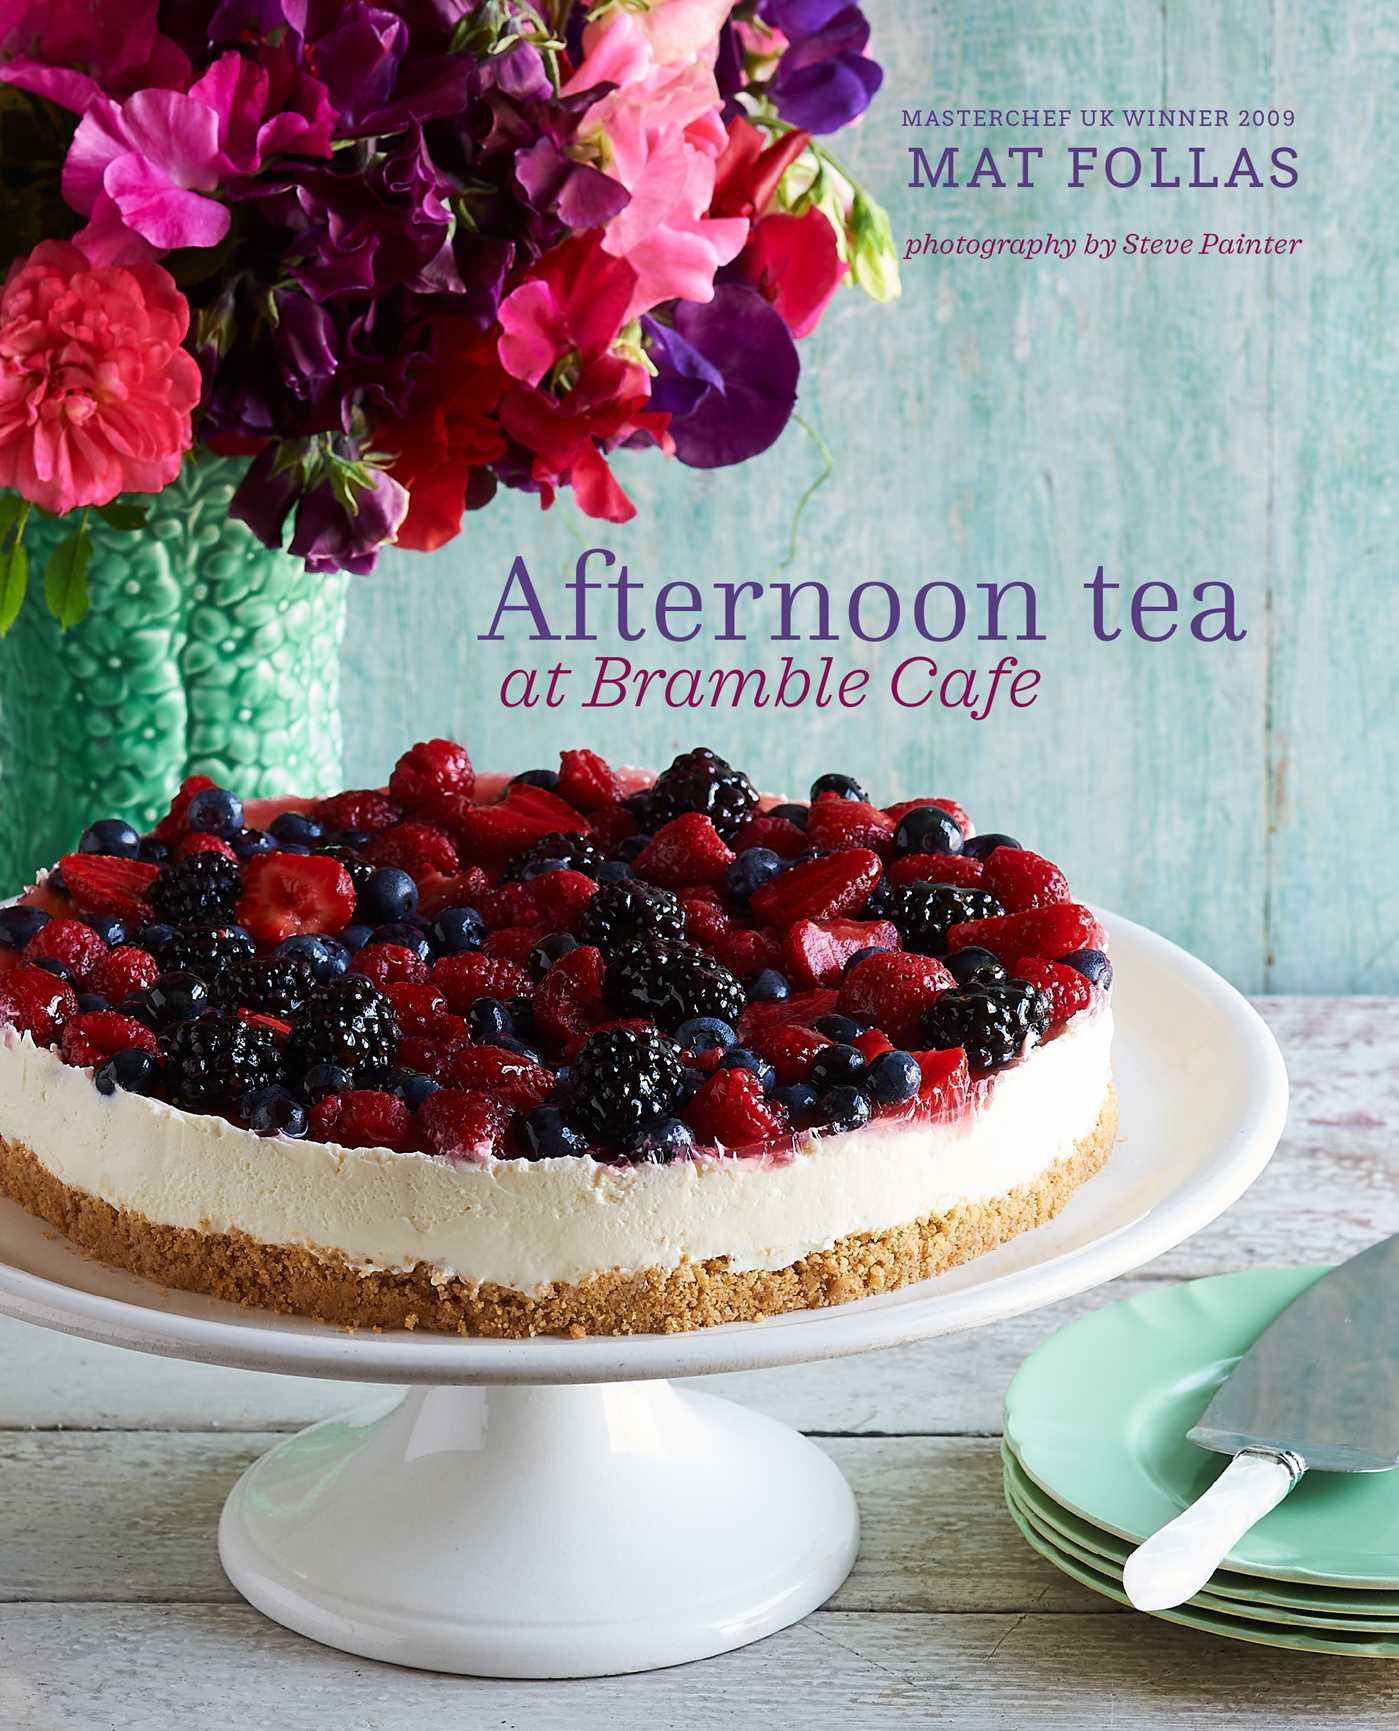 Afternoon tea at bramble cafe 9781849759373 hr